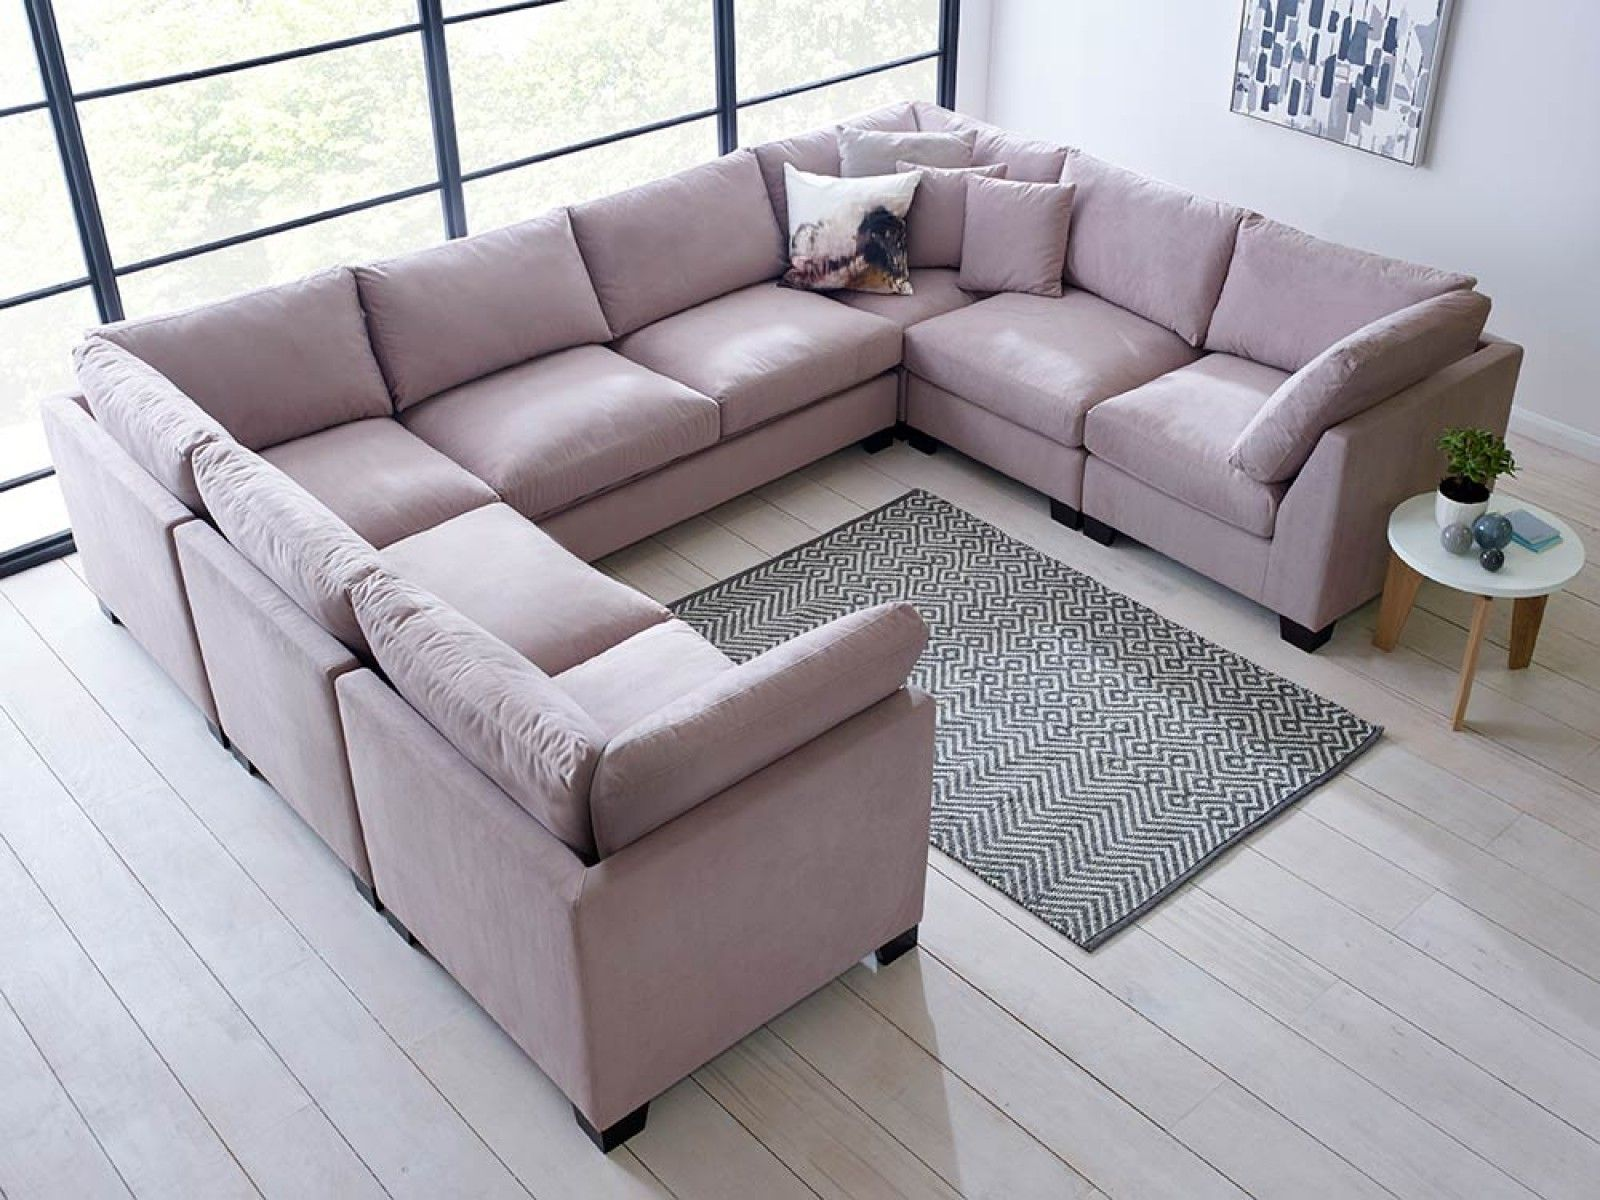 pin room search google shaped pinterest sofa couch couches u set movie